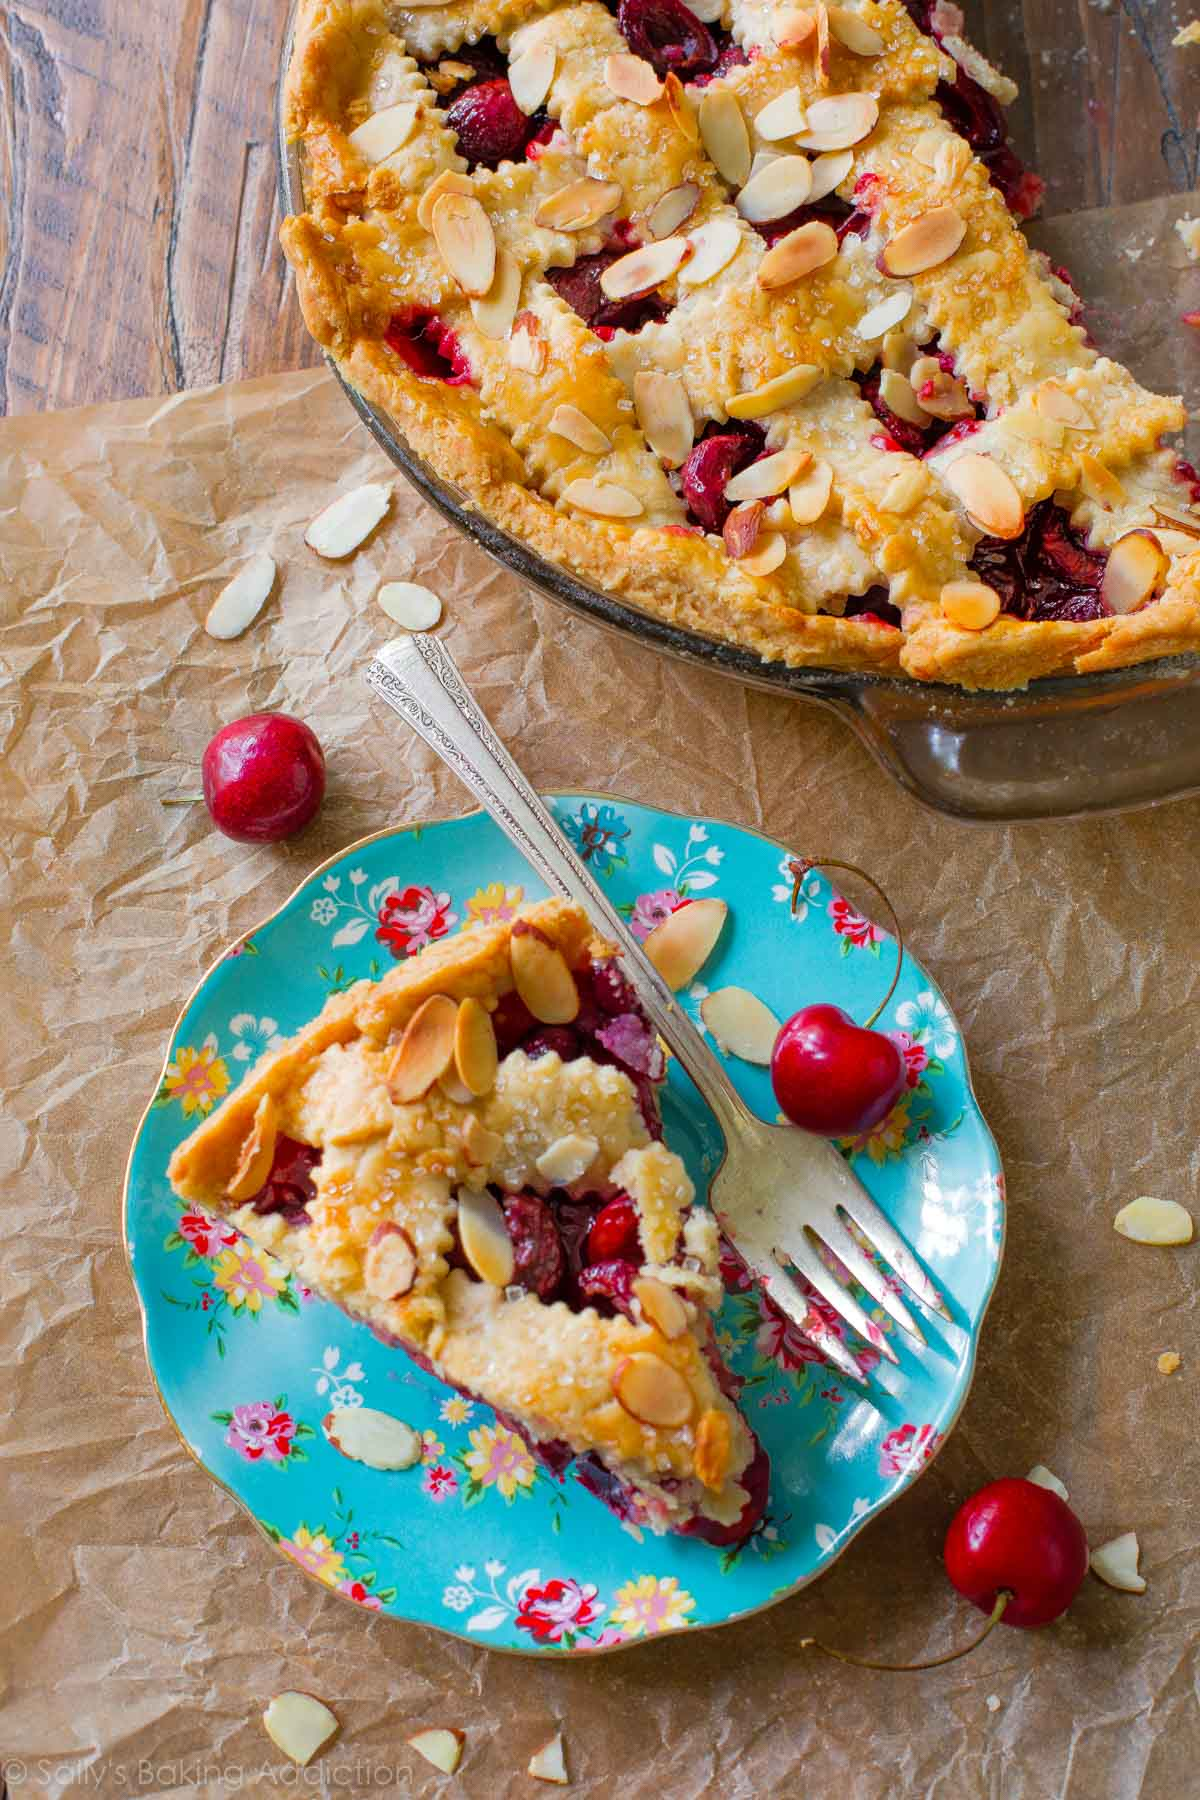 Here's how to make a classic fresh cherry pie completely from scratch. Add a little sprinkle of toasted almonds to amp up the flavor! Recipe on sallysbakingaddiction.com